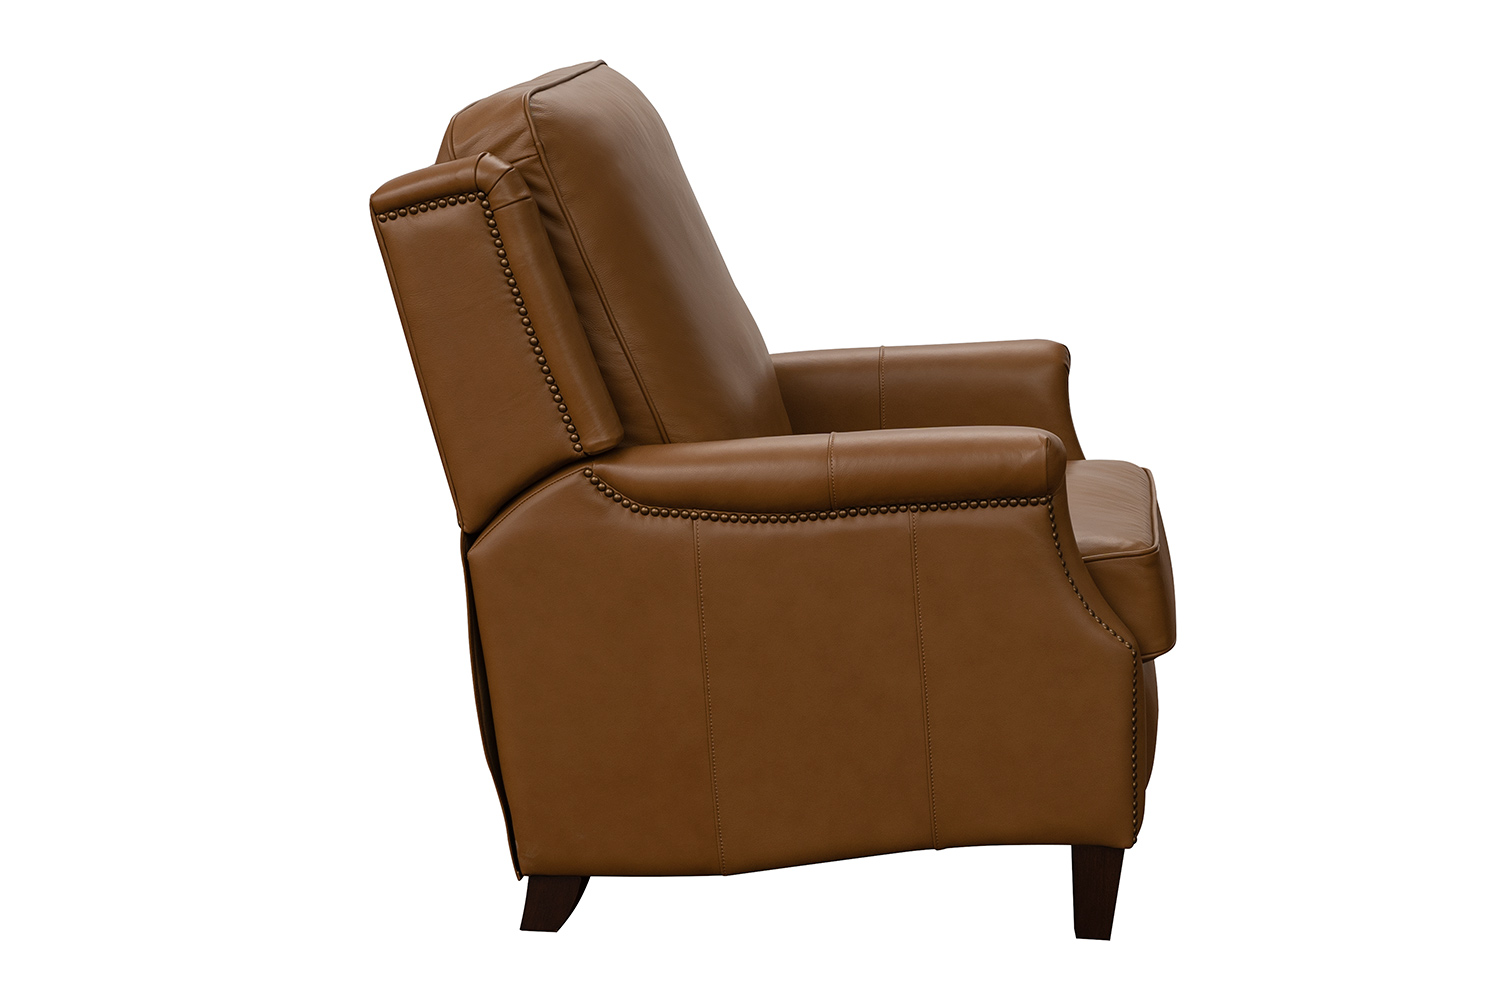 Barcalounger Riley Recliner Chair - Shoreham Ponytail/All Leather